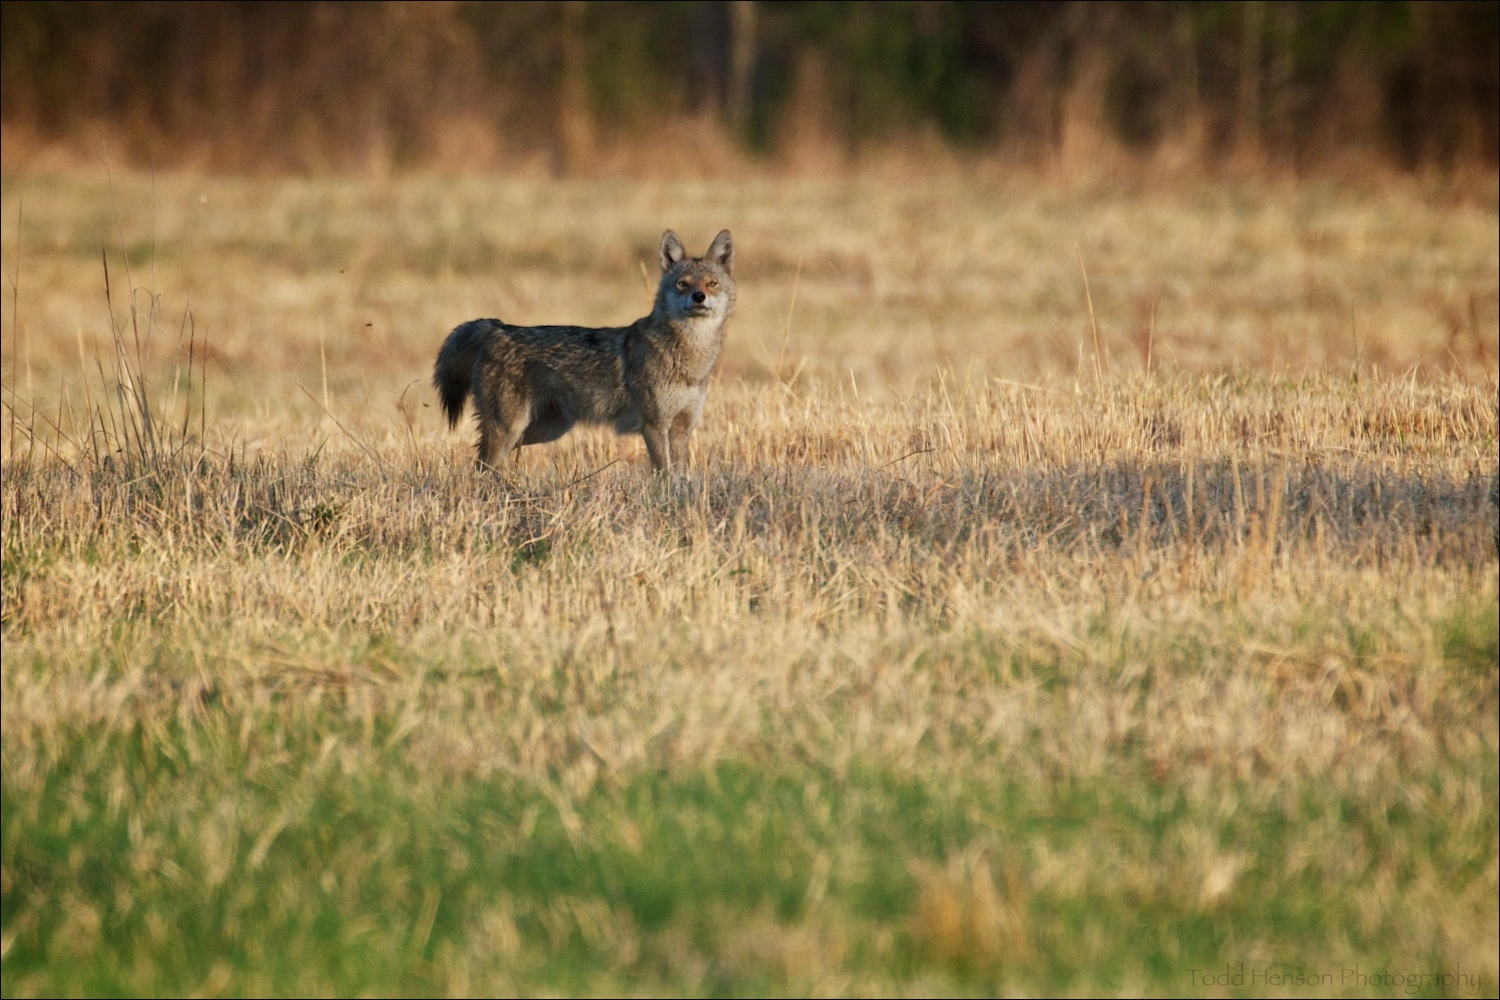 Coyote watching me as I photograph it